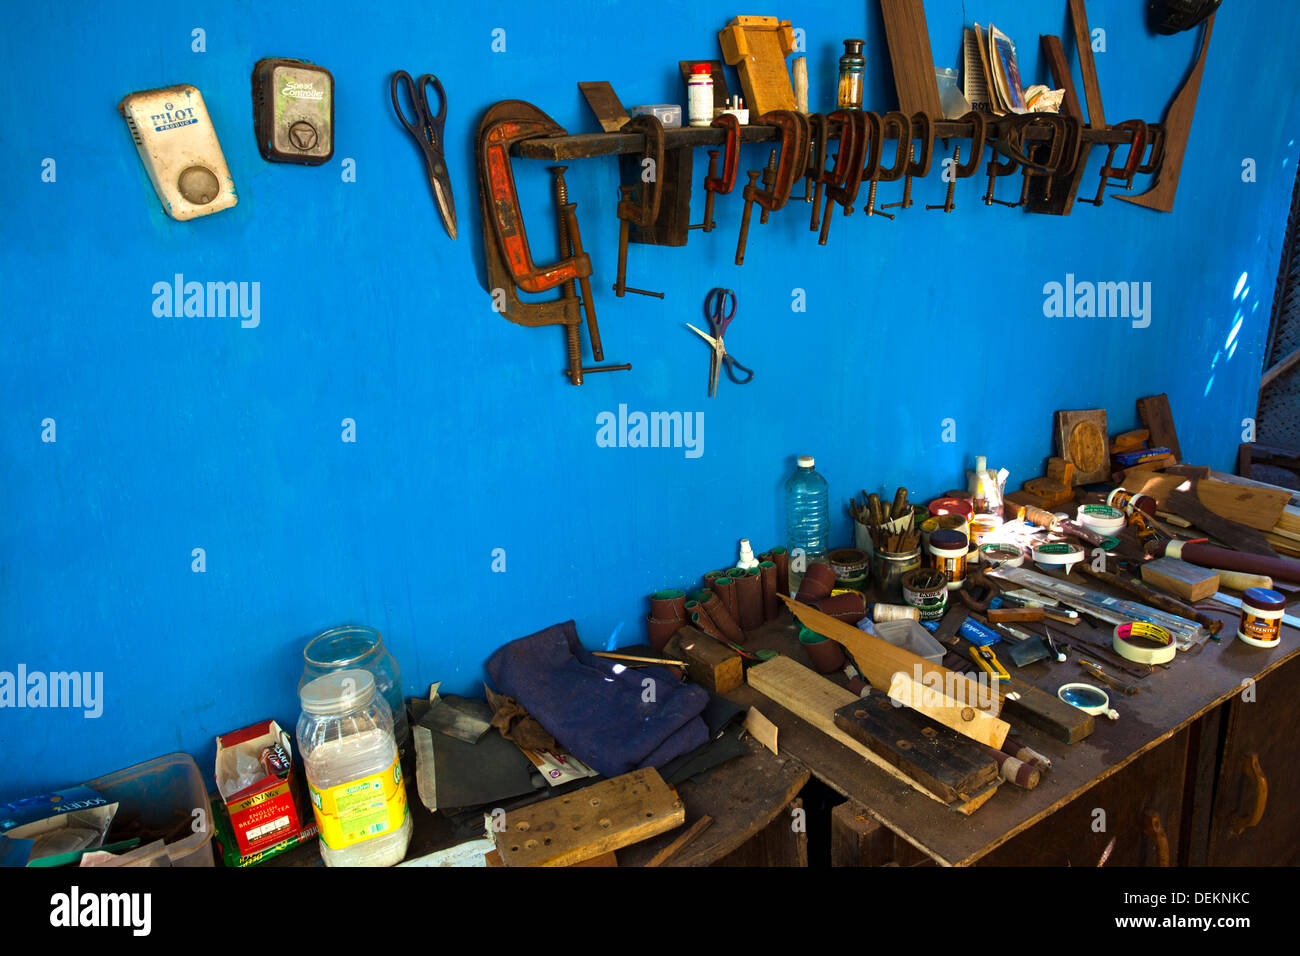 Working tools in a guitar workshop, Jungle Guitars, Baga, North Goa, Goa, India - Stock Image